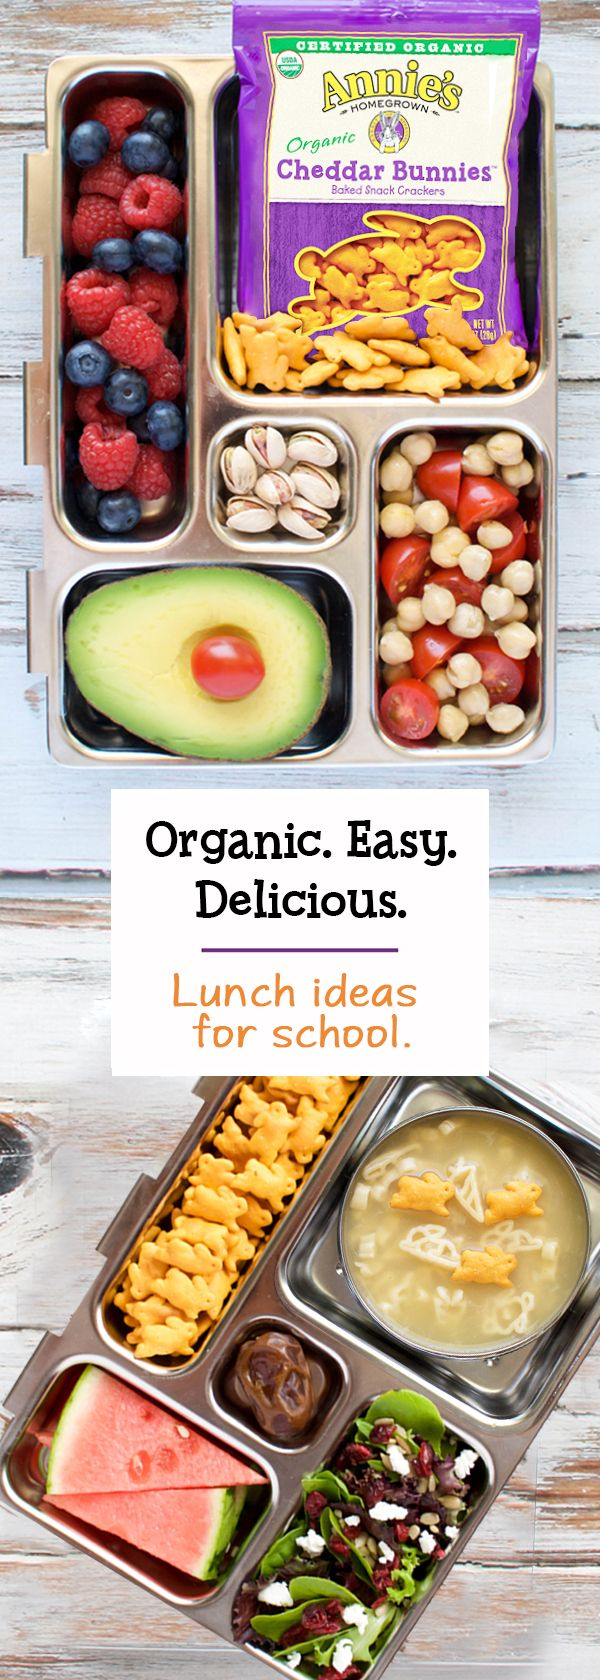 Organic, easy, AND delicious! Back to school lunch packing can tick all three boxes. Just add Annie's Organic Soup in a thermos for a cozy lunch on a chilly day, or try tossing in a pouch of Annie's Organic Cheddar Bunnies for a snackable lunch they won't dare trade.